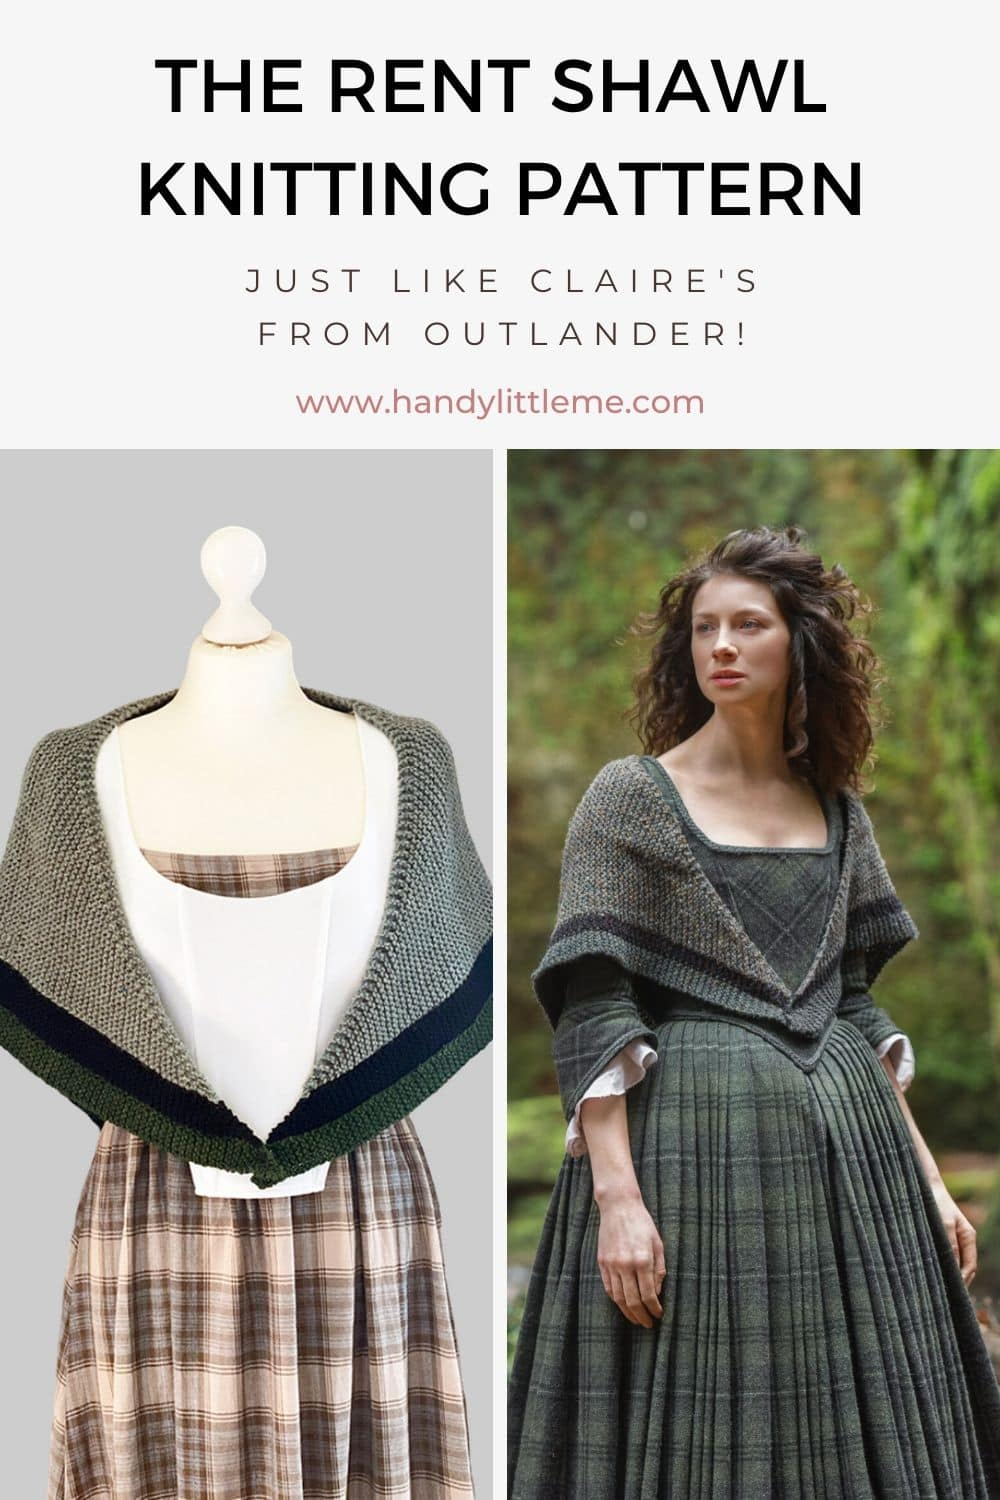 Claires Rent Shawl knitting pattern